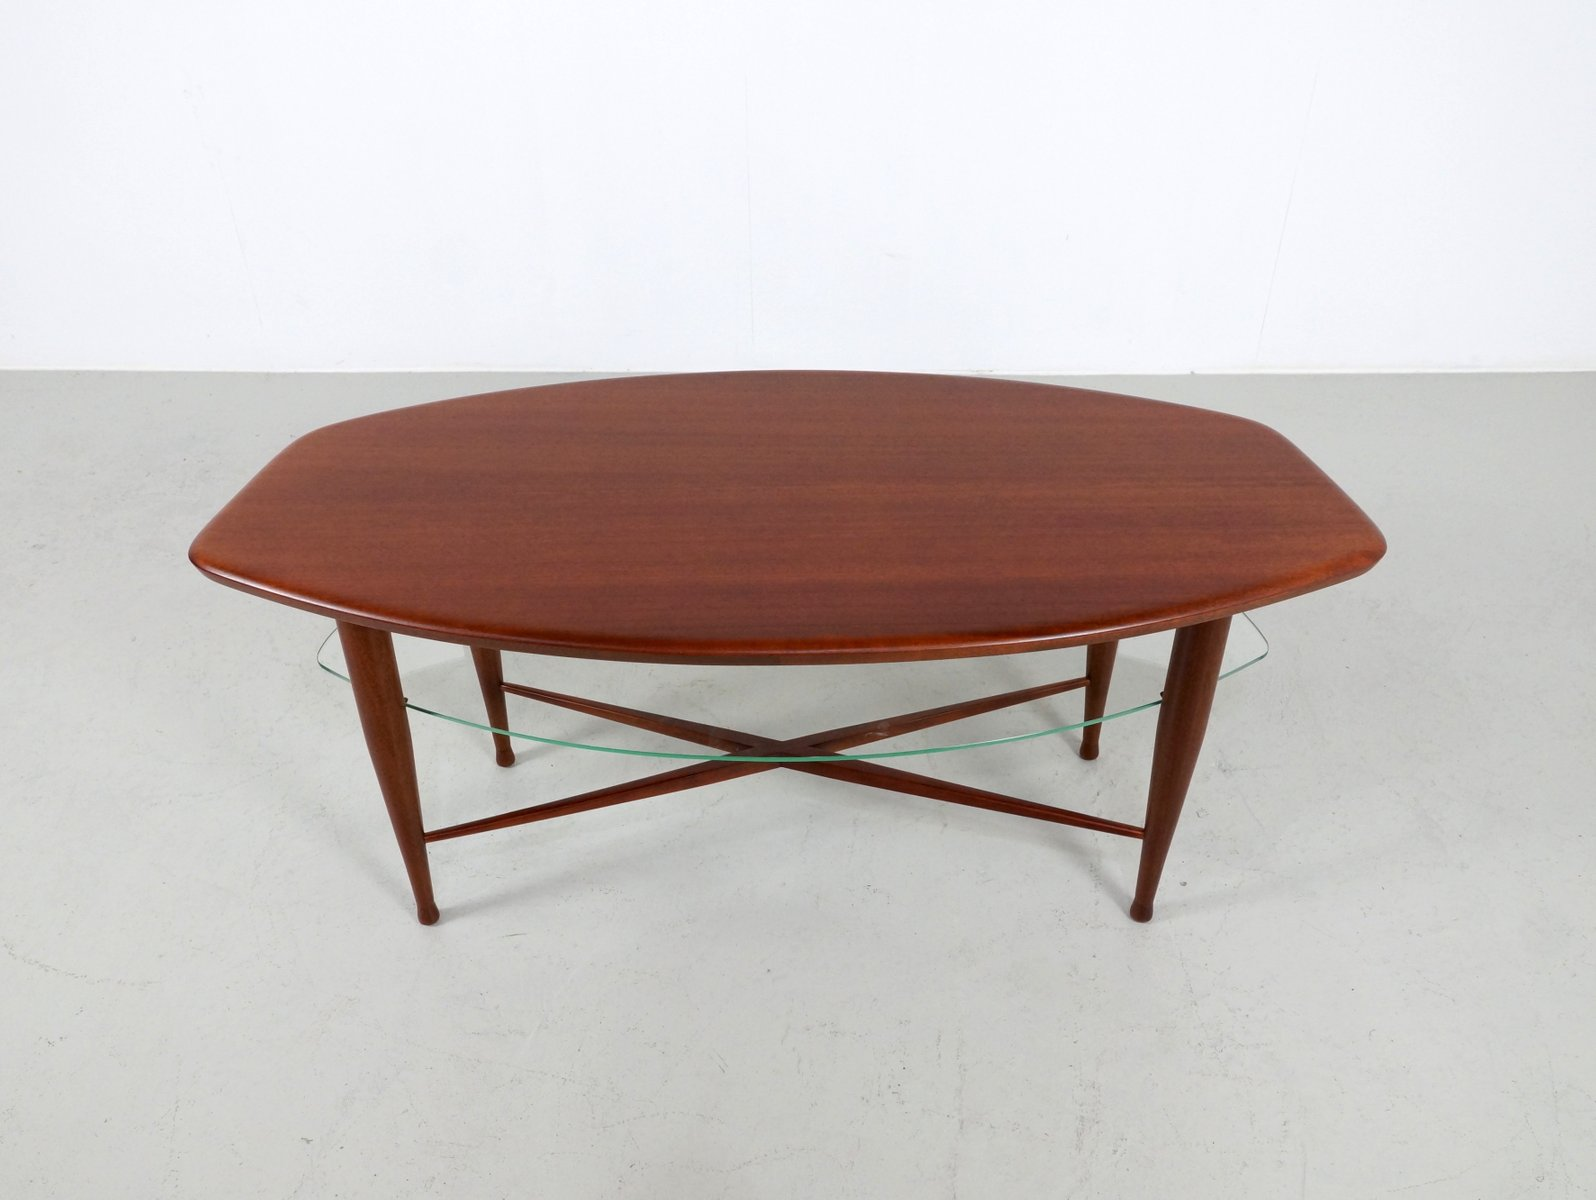 Vintage Teak Coffee Table With Glass Magazine Shelf For Sale At Pamono